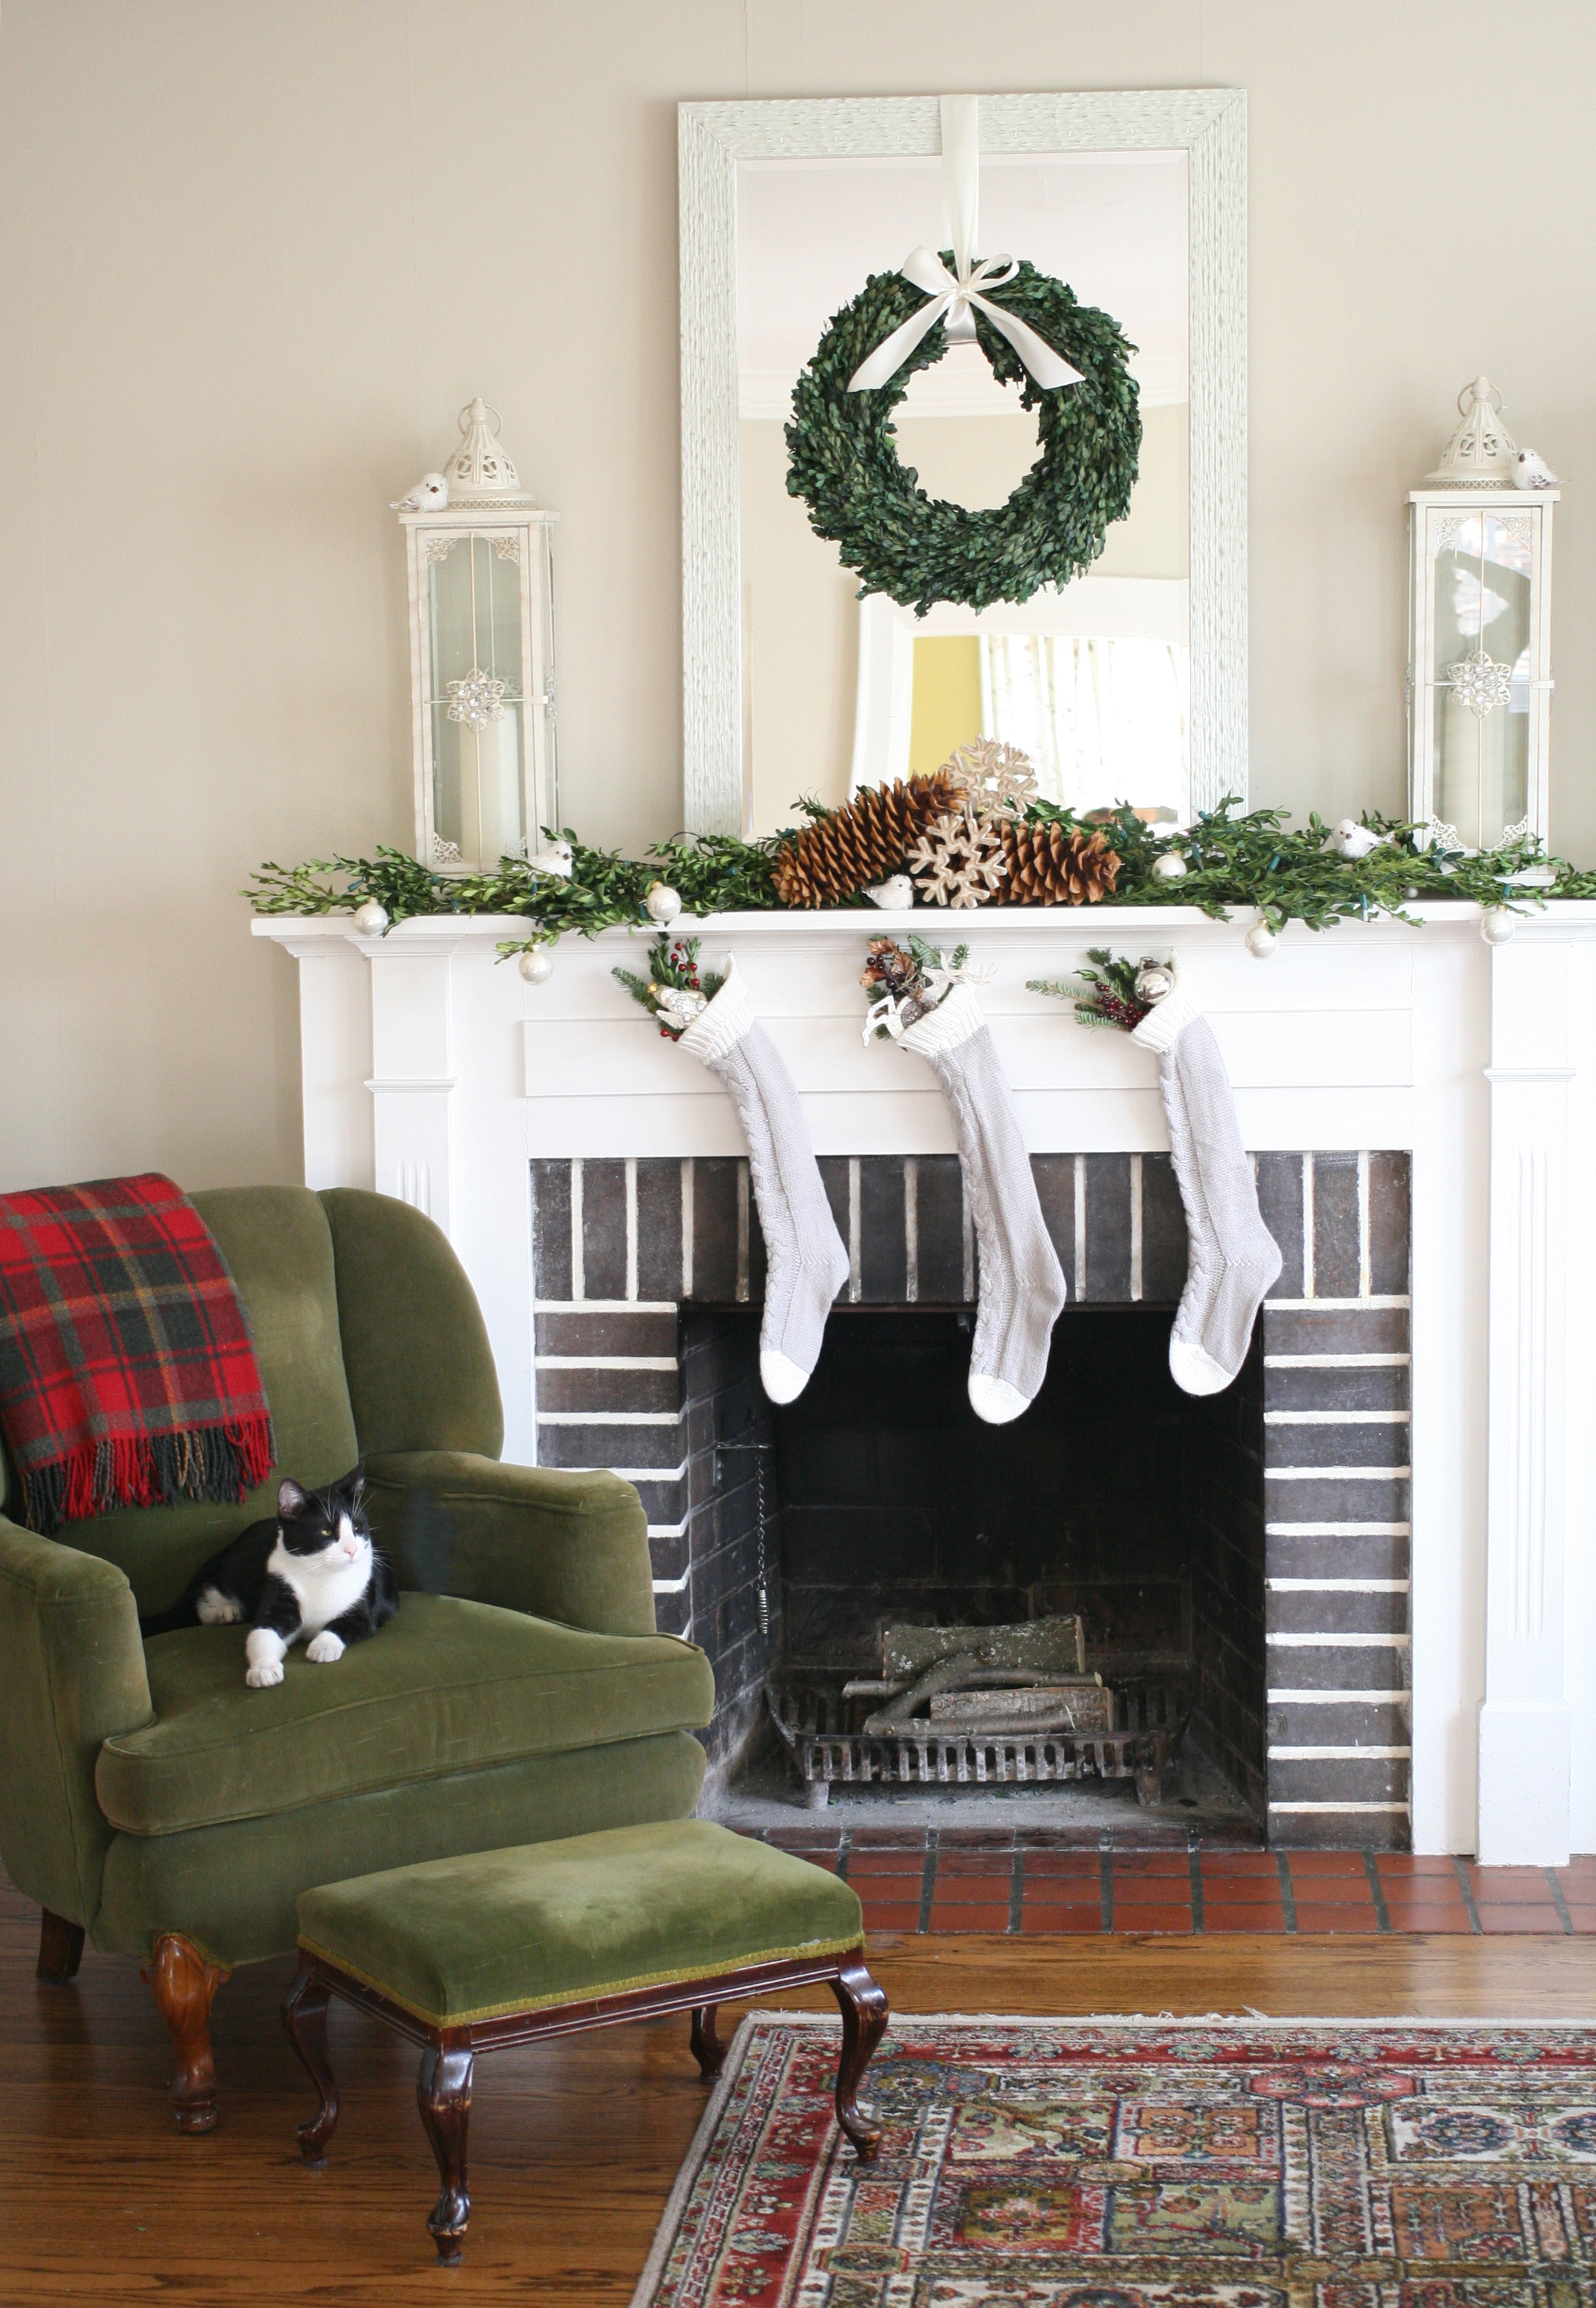 mantel-green armchair & dash-1